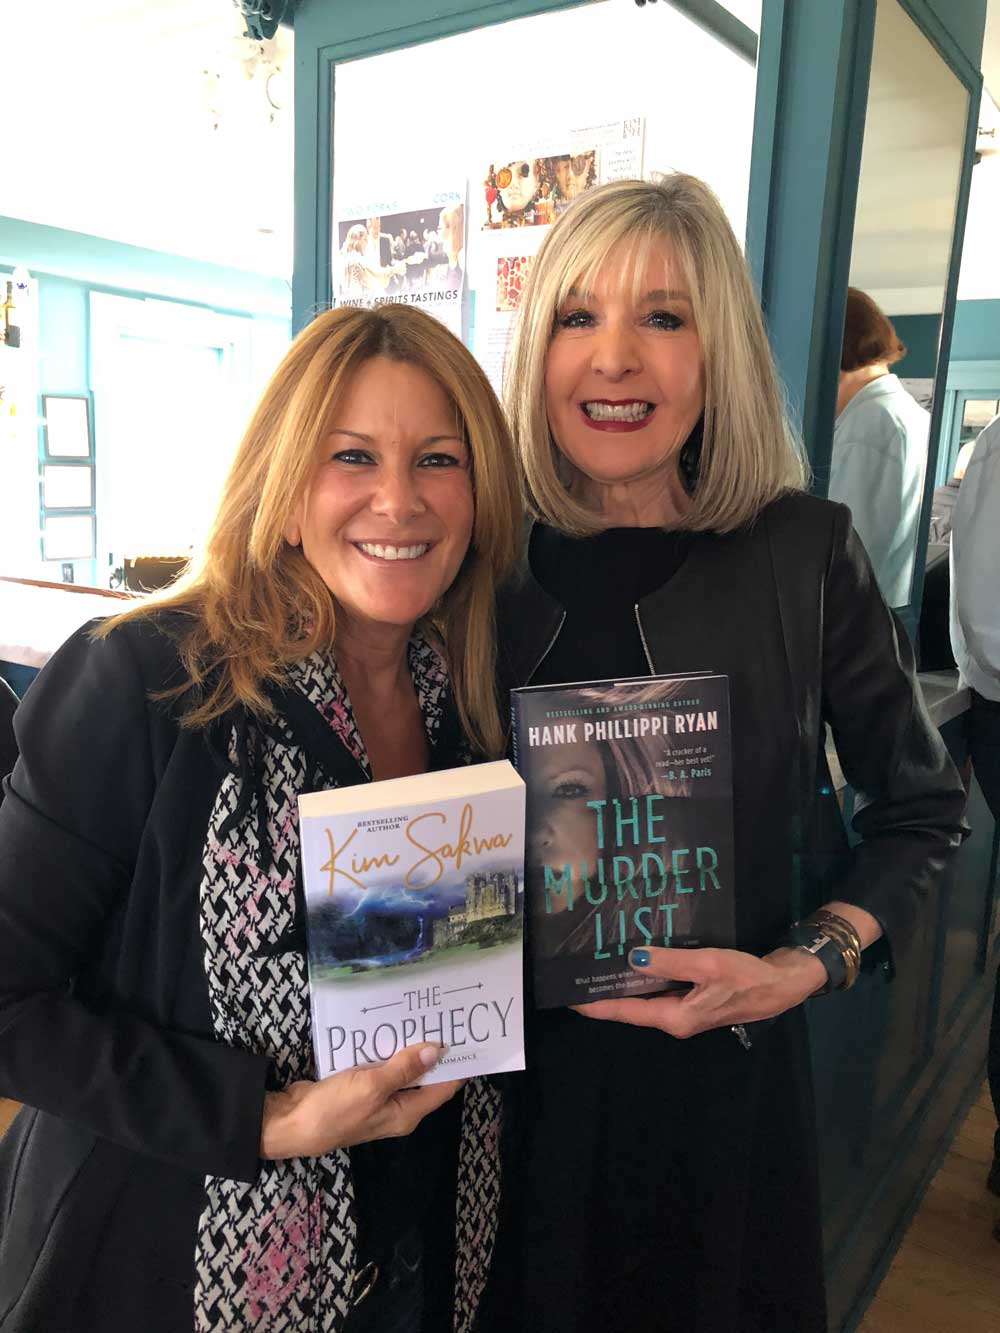 Authors Kim Sakwa and Hank Phillippi Ryan